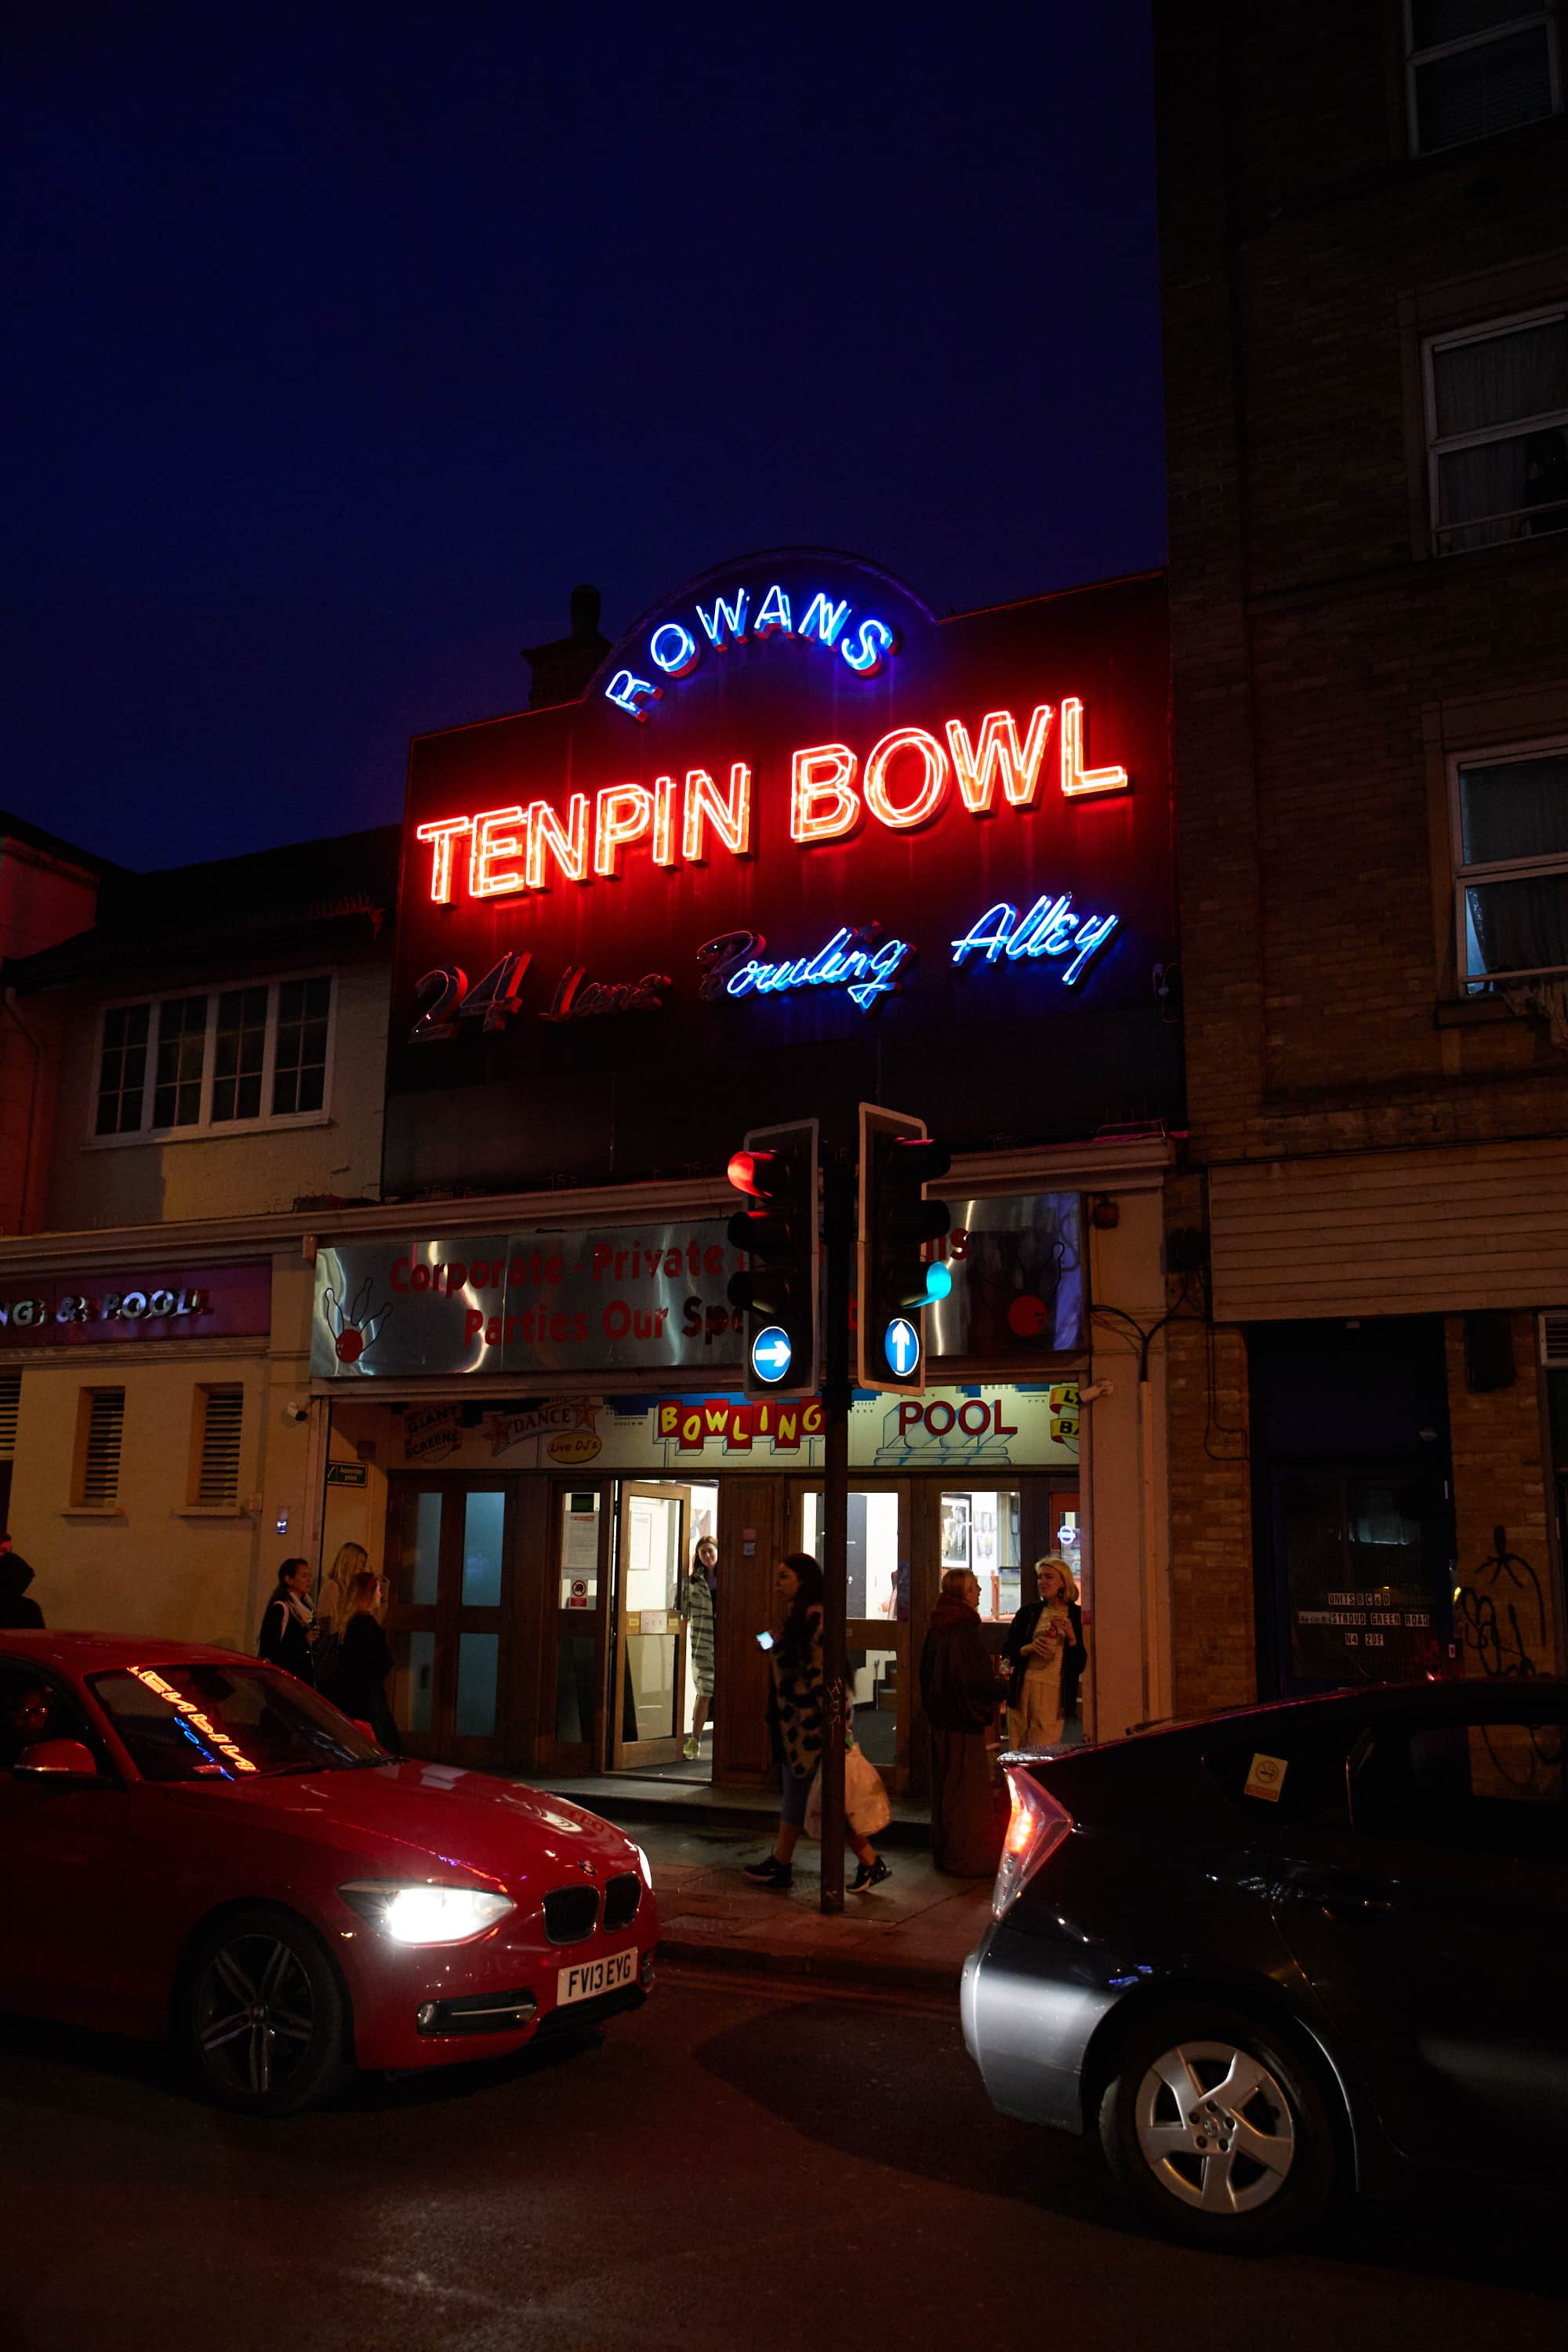 END. London City Guide: Mini Swoosh playing pool at Rowans Ten Pin Bowling in Finsbury Park